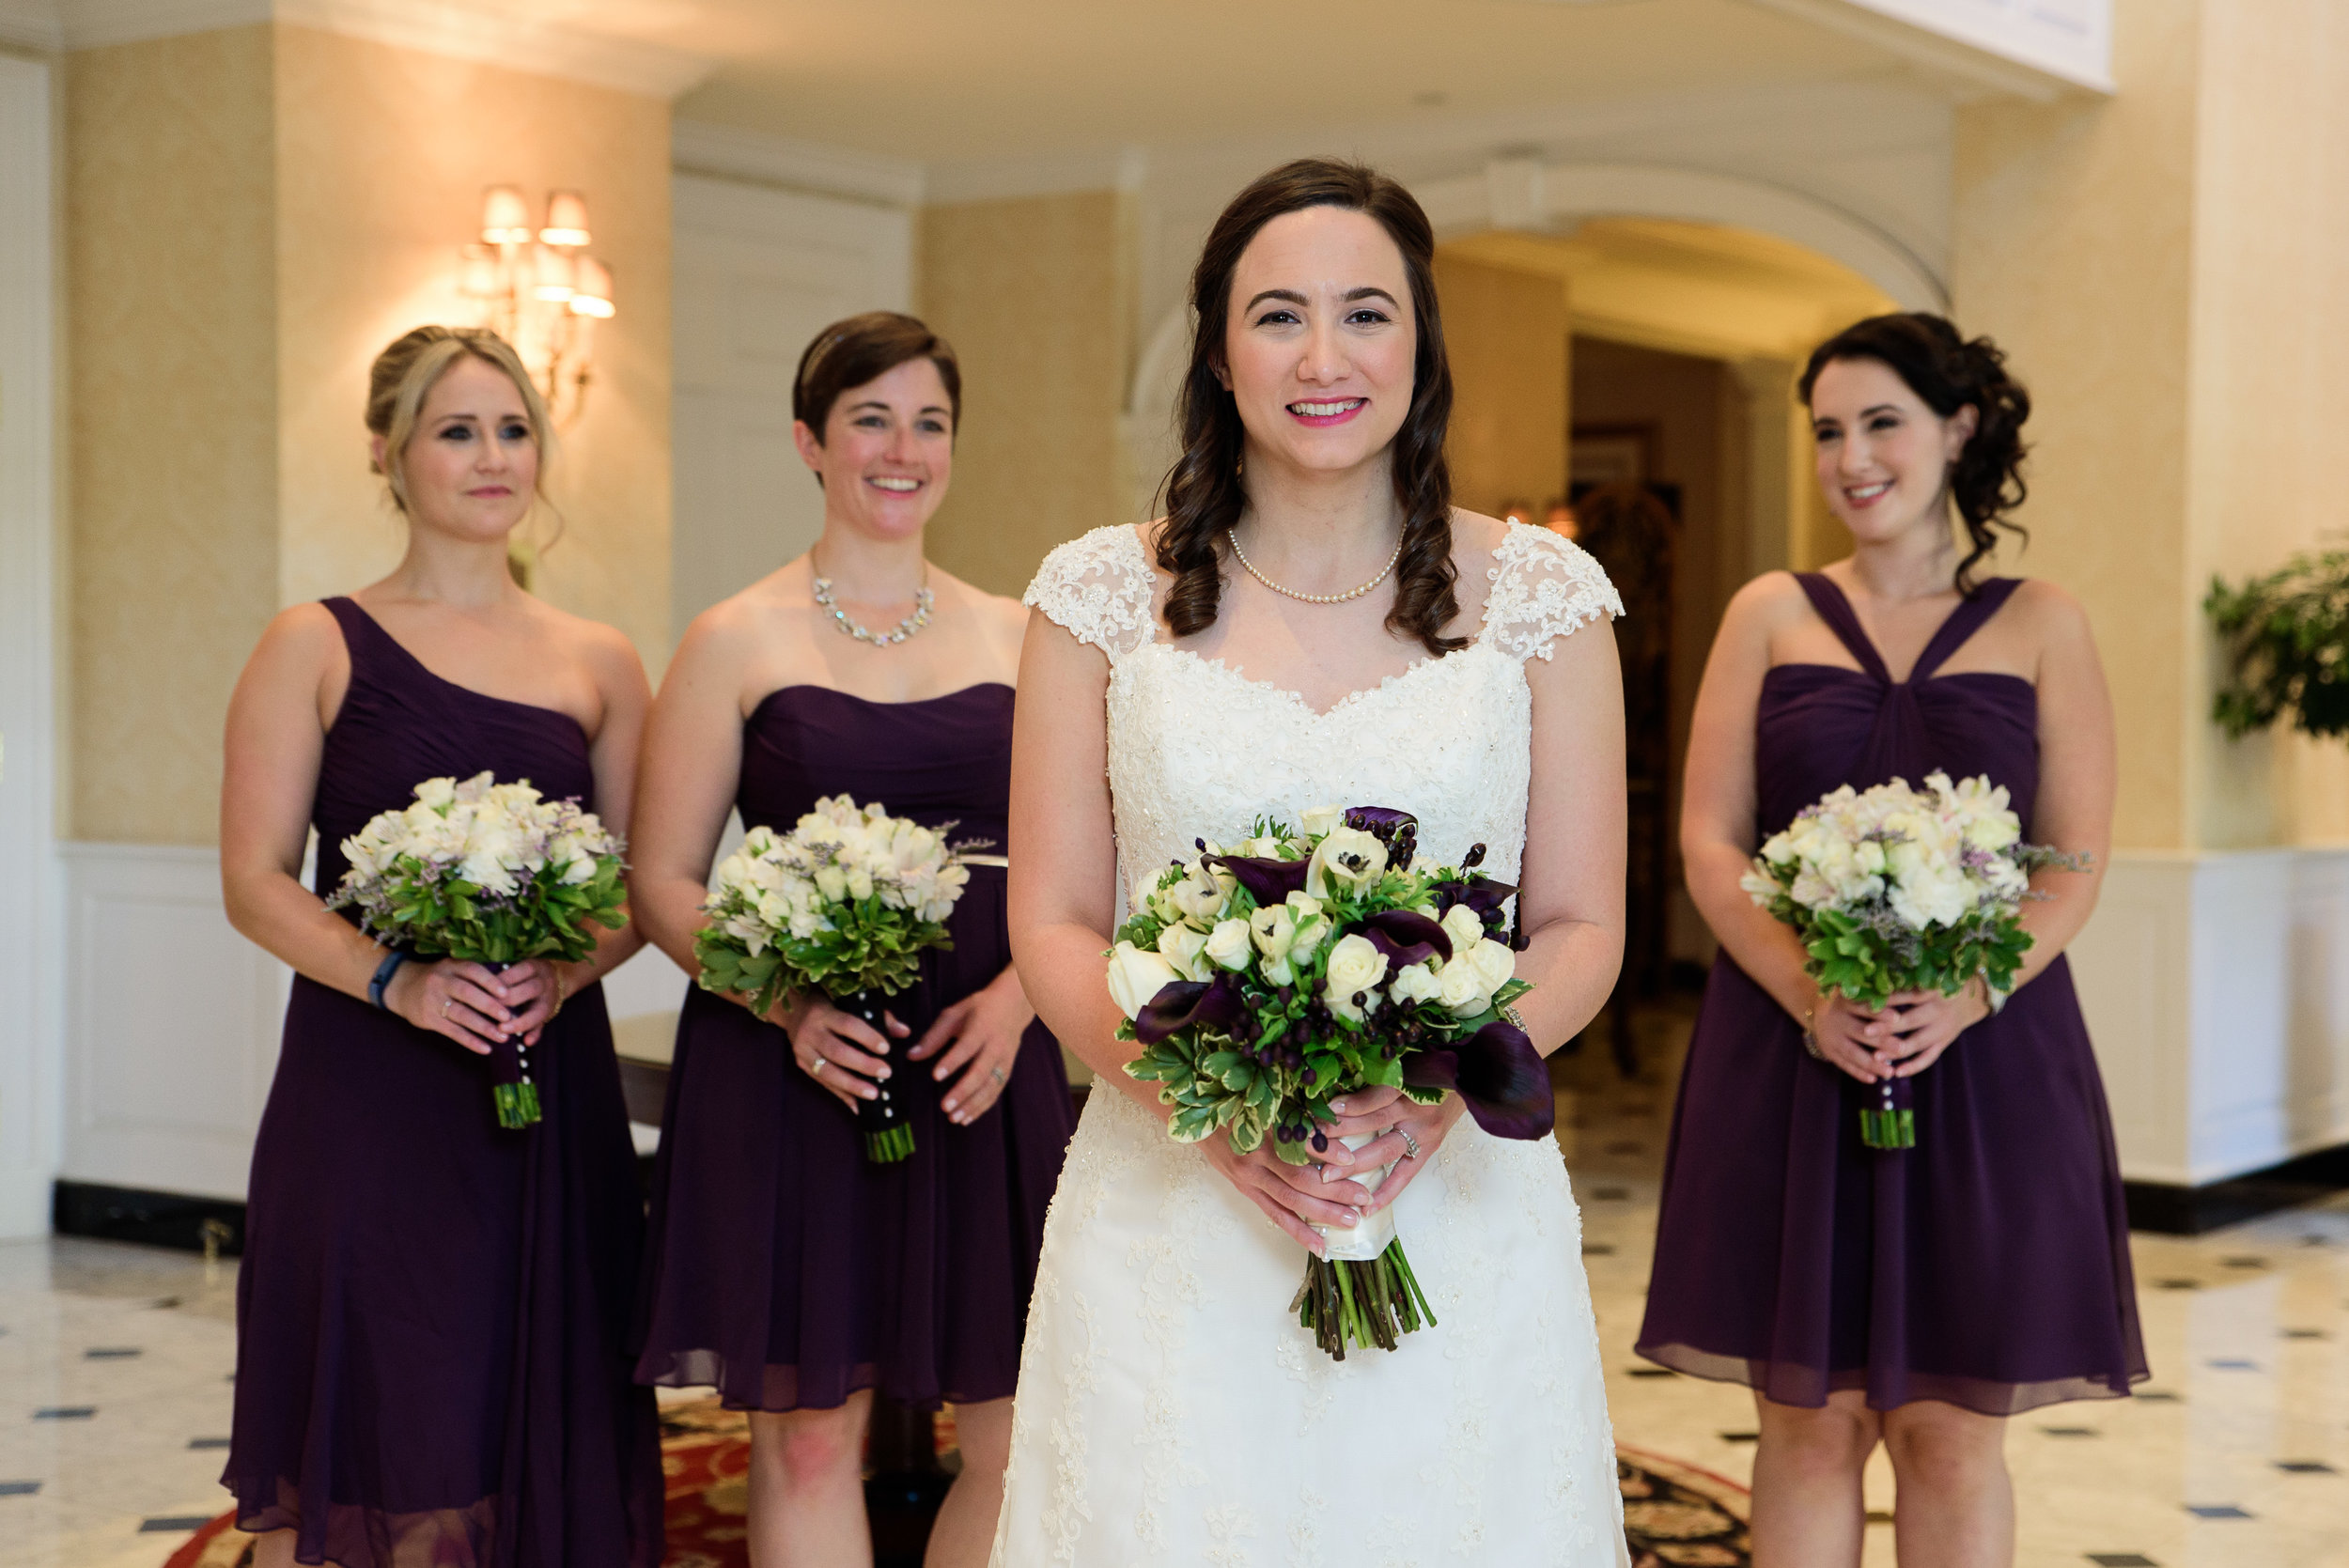 Bride and bridesmaids - DC wedding